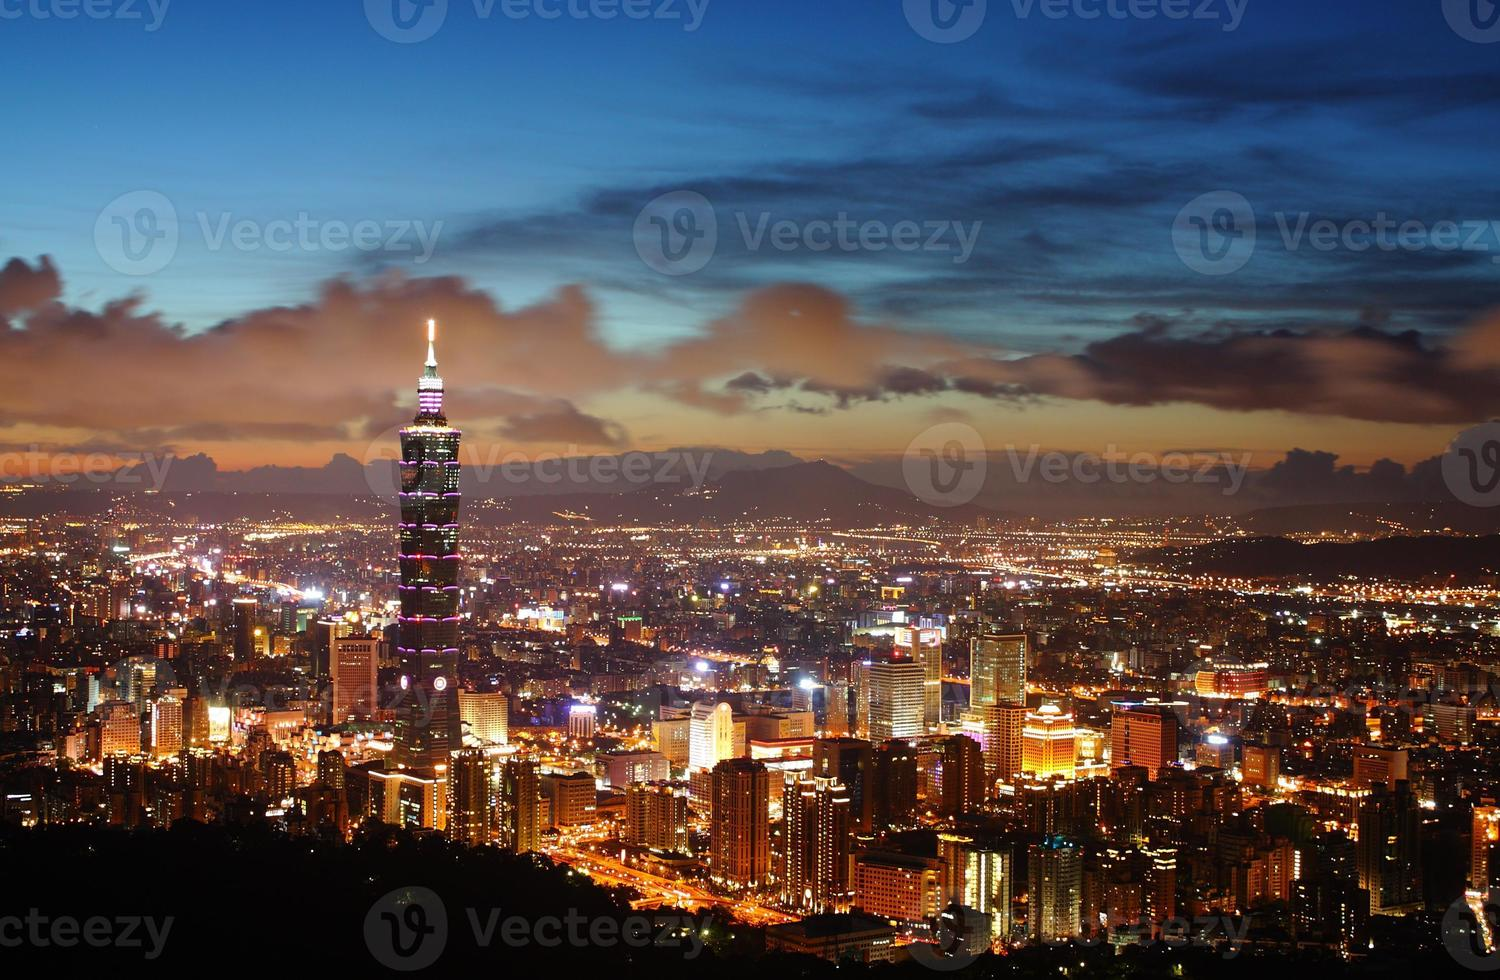 Taipei night scene photo